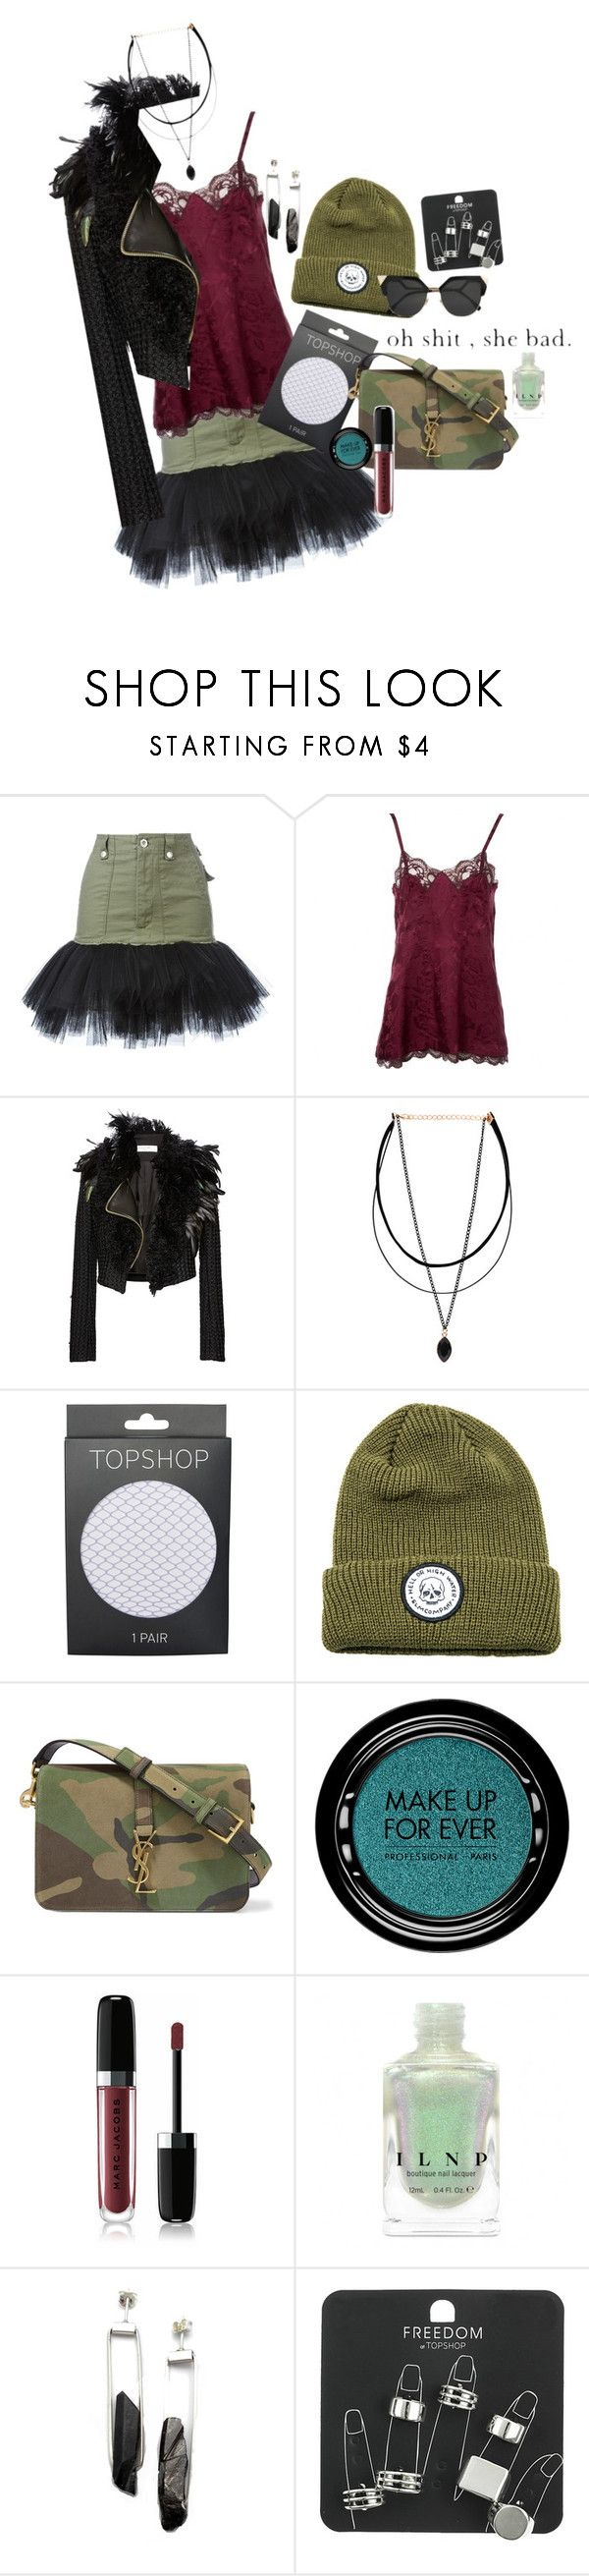 """."" by applecocaine ❤ liked on Polyvore featuring Unravel, Christian Dior, Lanvin, Topshop, Elm Company, Yves Saint Laurent, MAKE UP FOR EVER, Marc Jacobs and Enji Studio Jewelry"